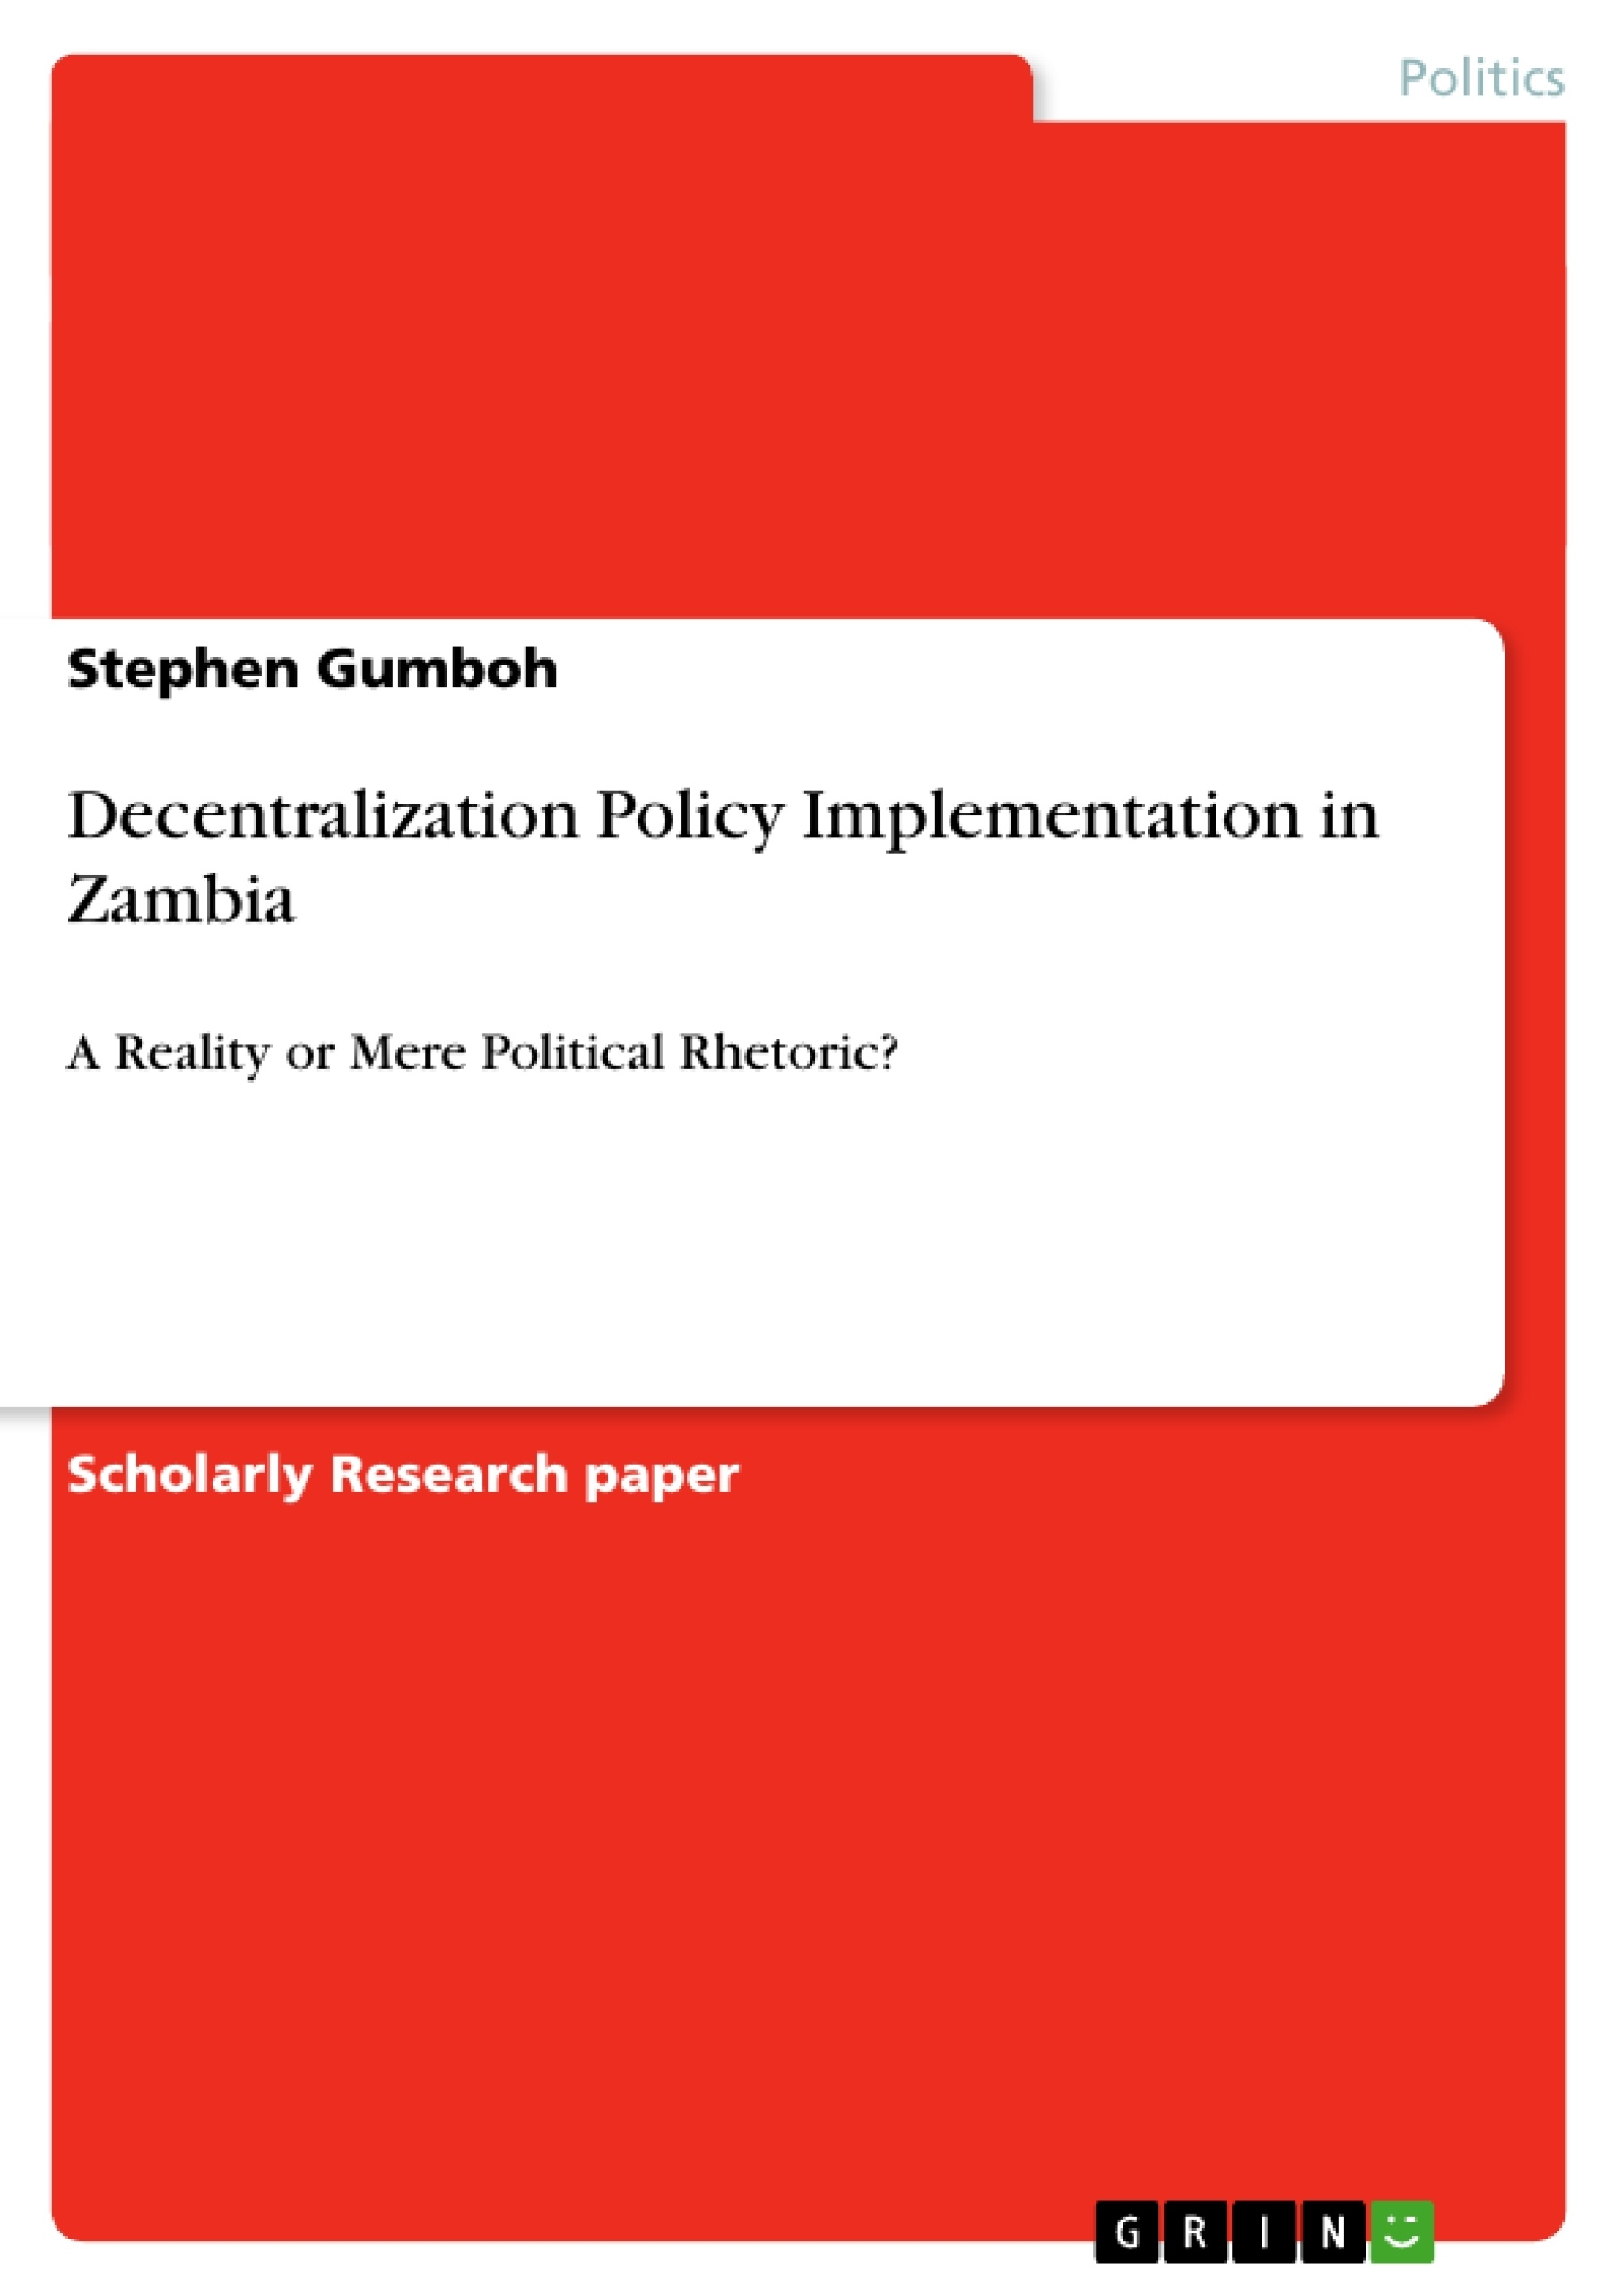 Title: Decentralization Policy Implementation in Zambia